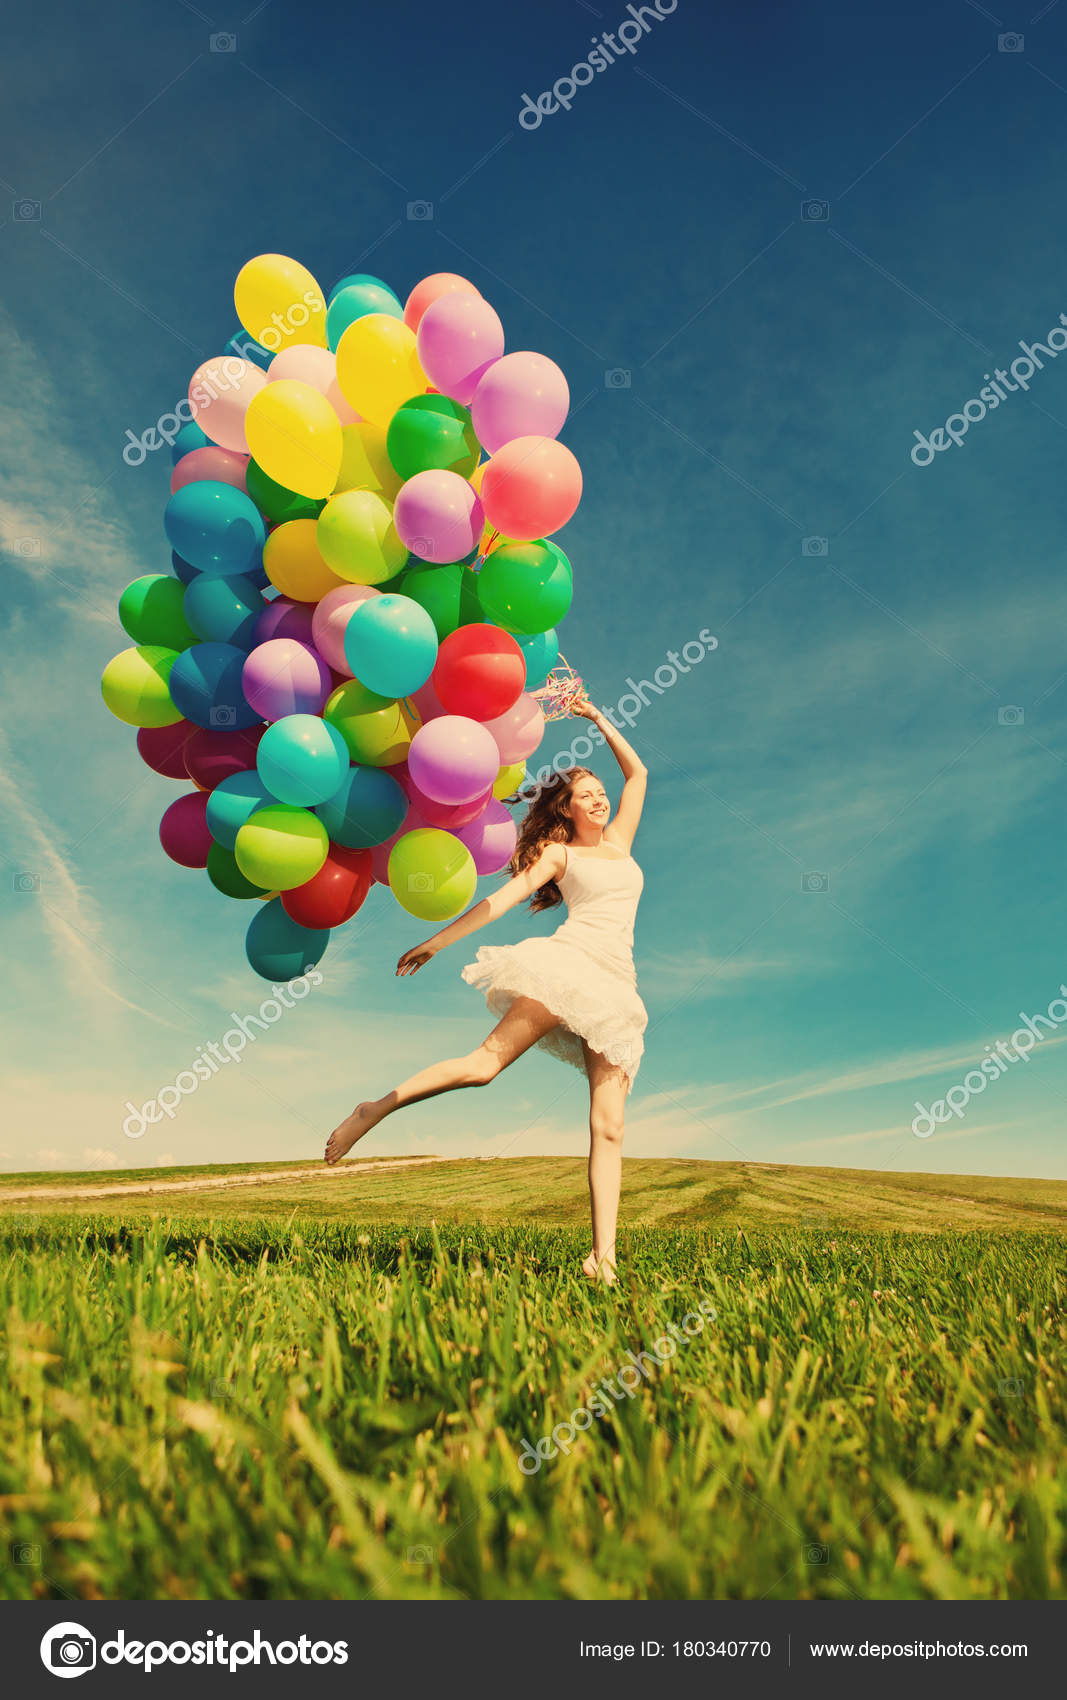 Happy Birthday Woman Sky Rainbow Colored Air Balloons Her Hands Stock Photo